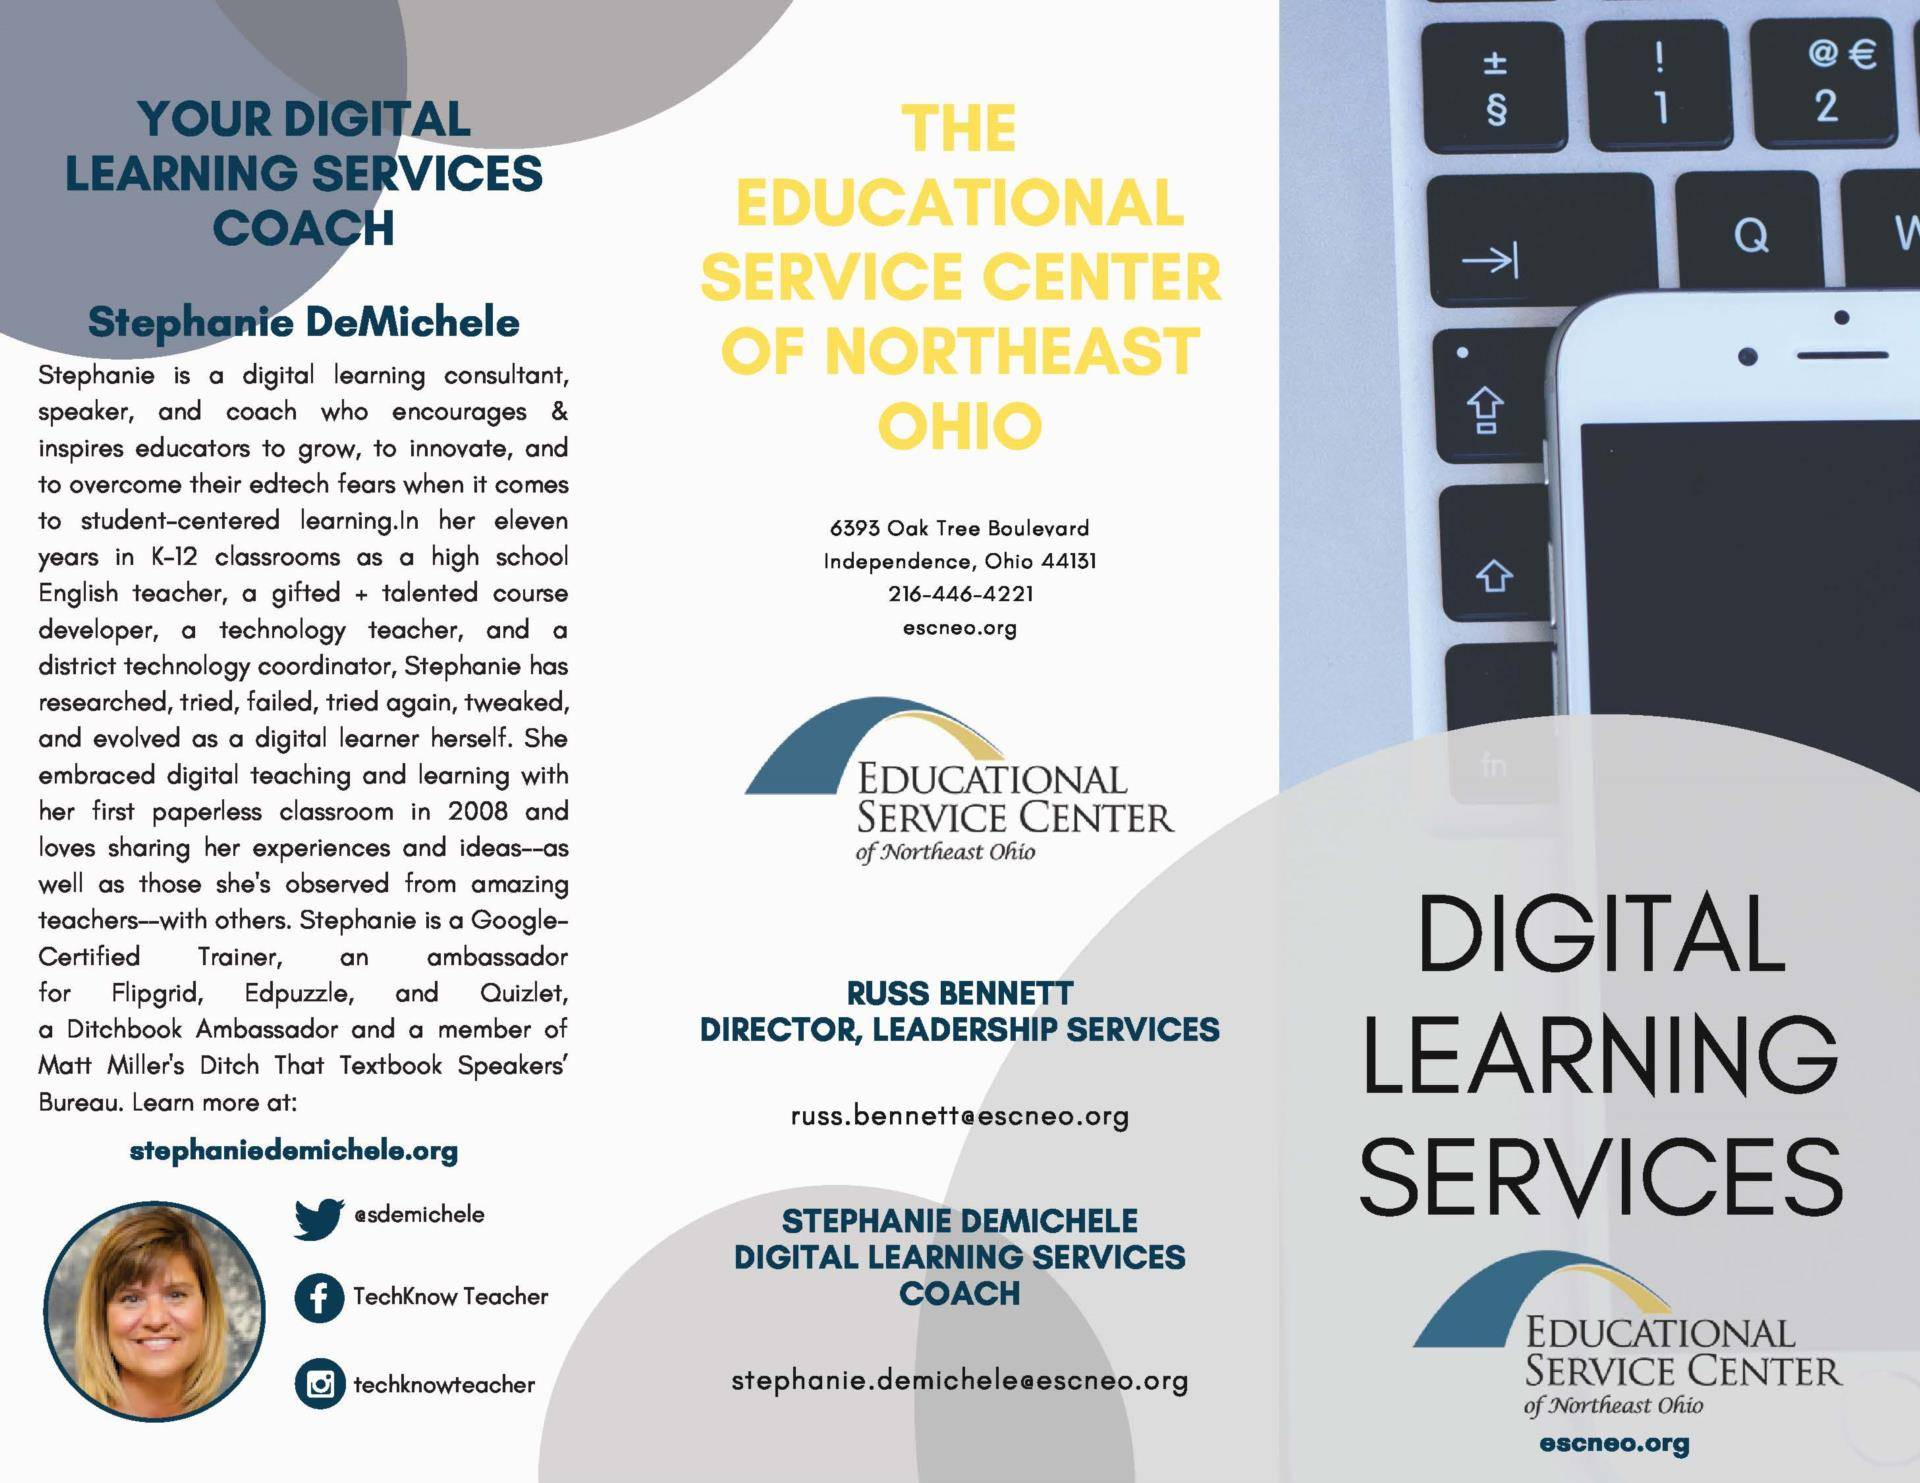 Digital Learning Services Page 1